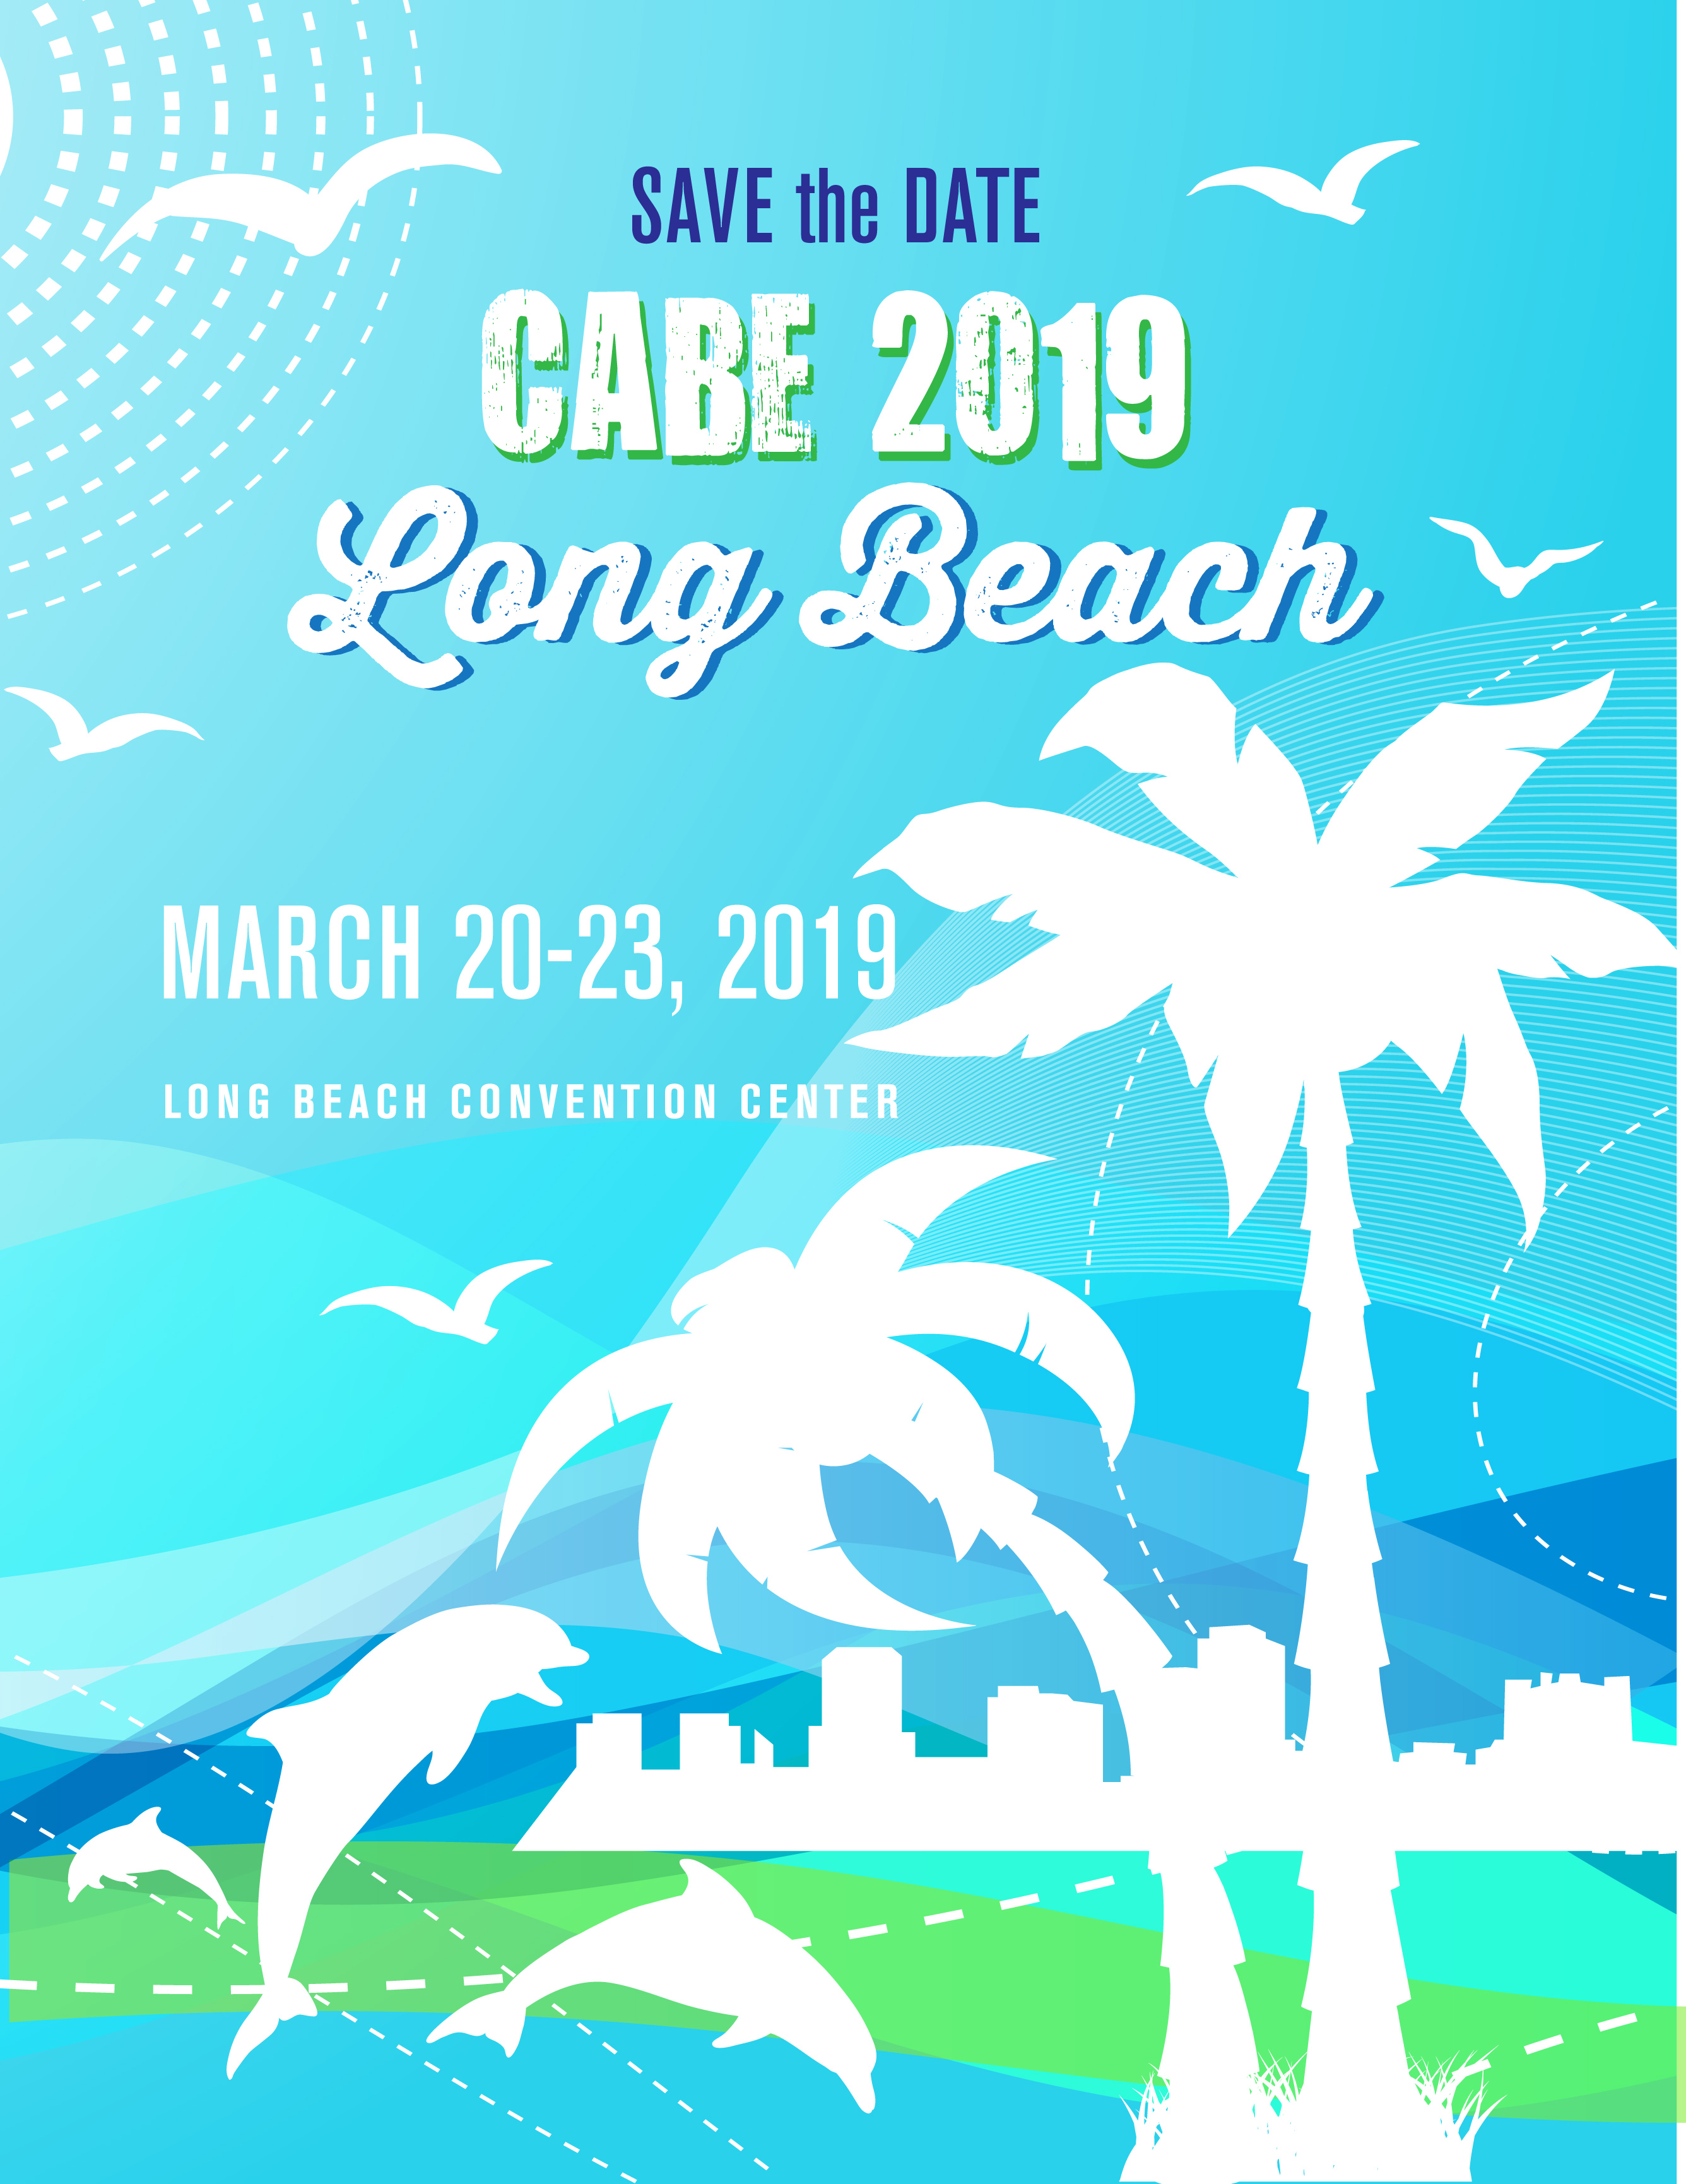 Save the Date for CABE 2019